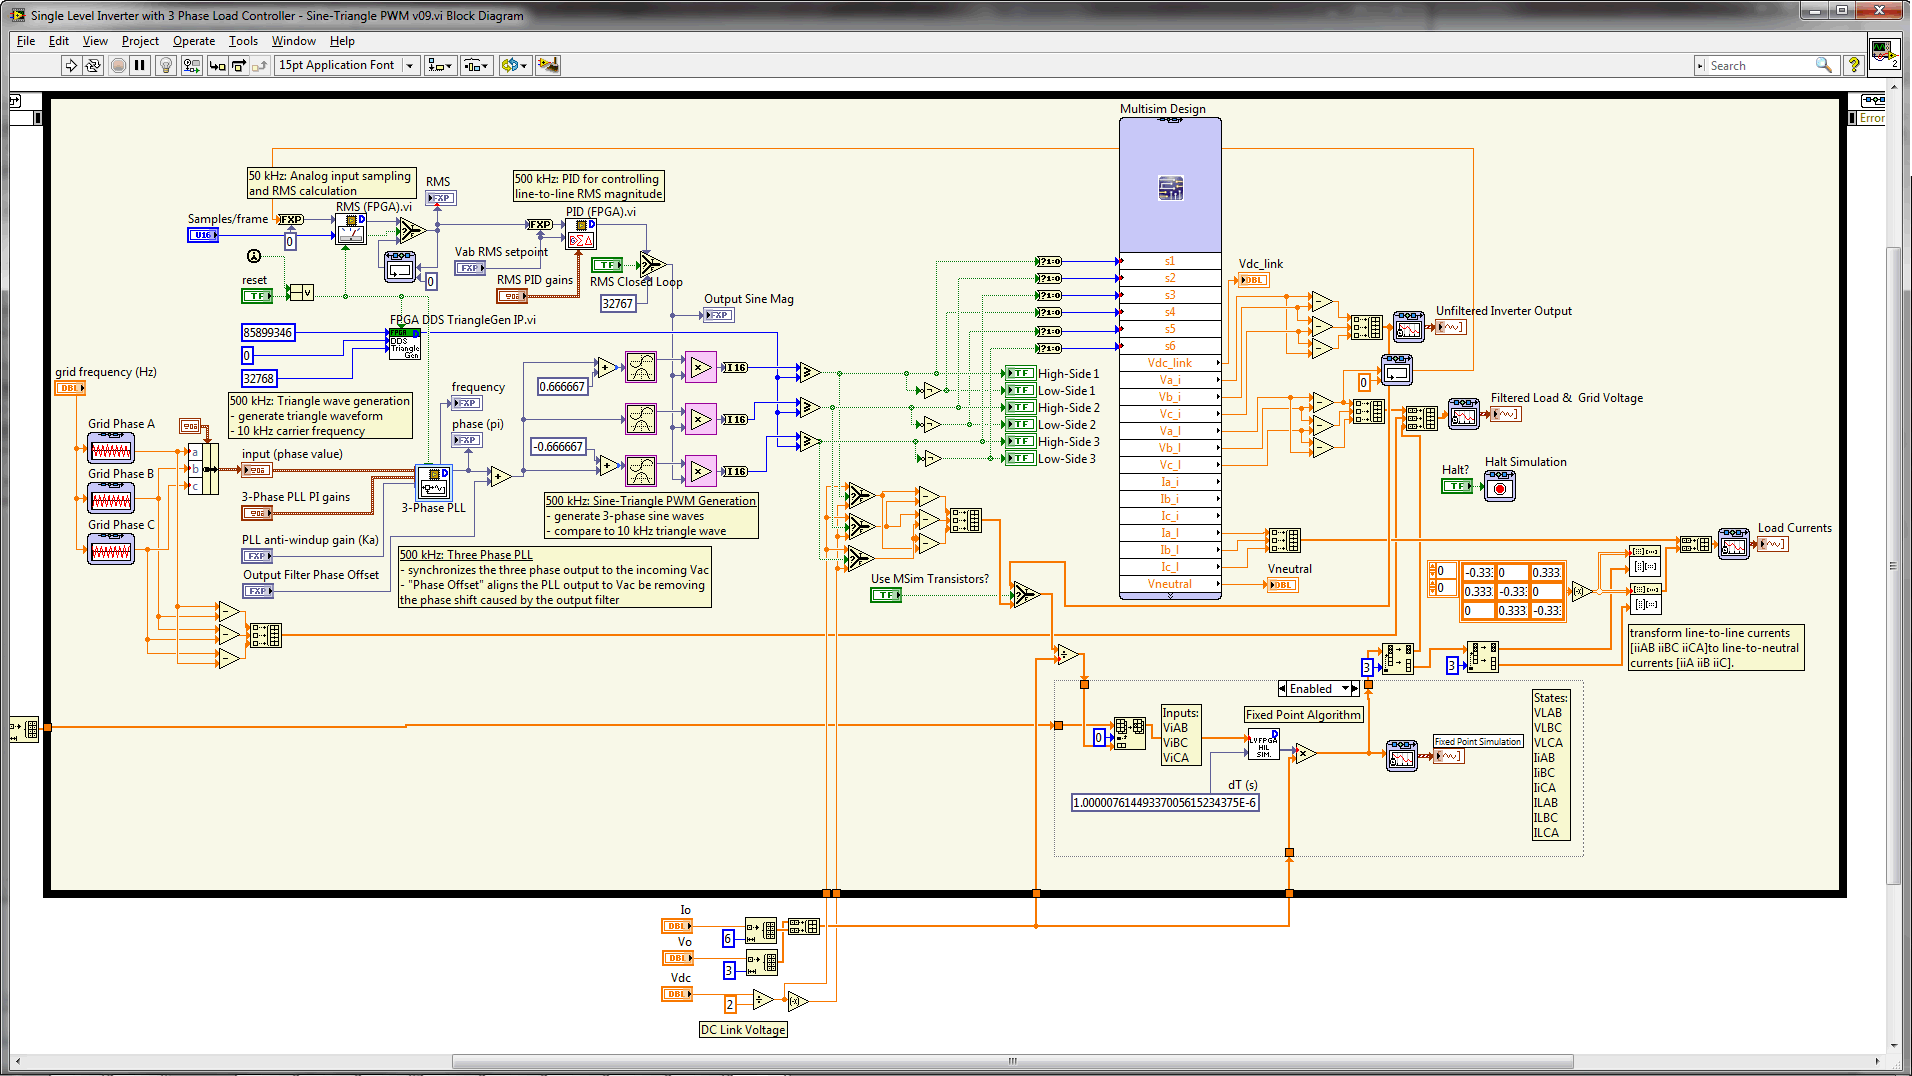 Comparison Of Multisim Vs Lv Fpga Real Time Hil Simulation Results Three Phase Inverter Circuit Comparing Simulations For The With Different Component Values